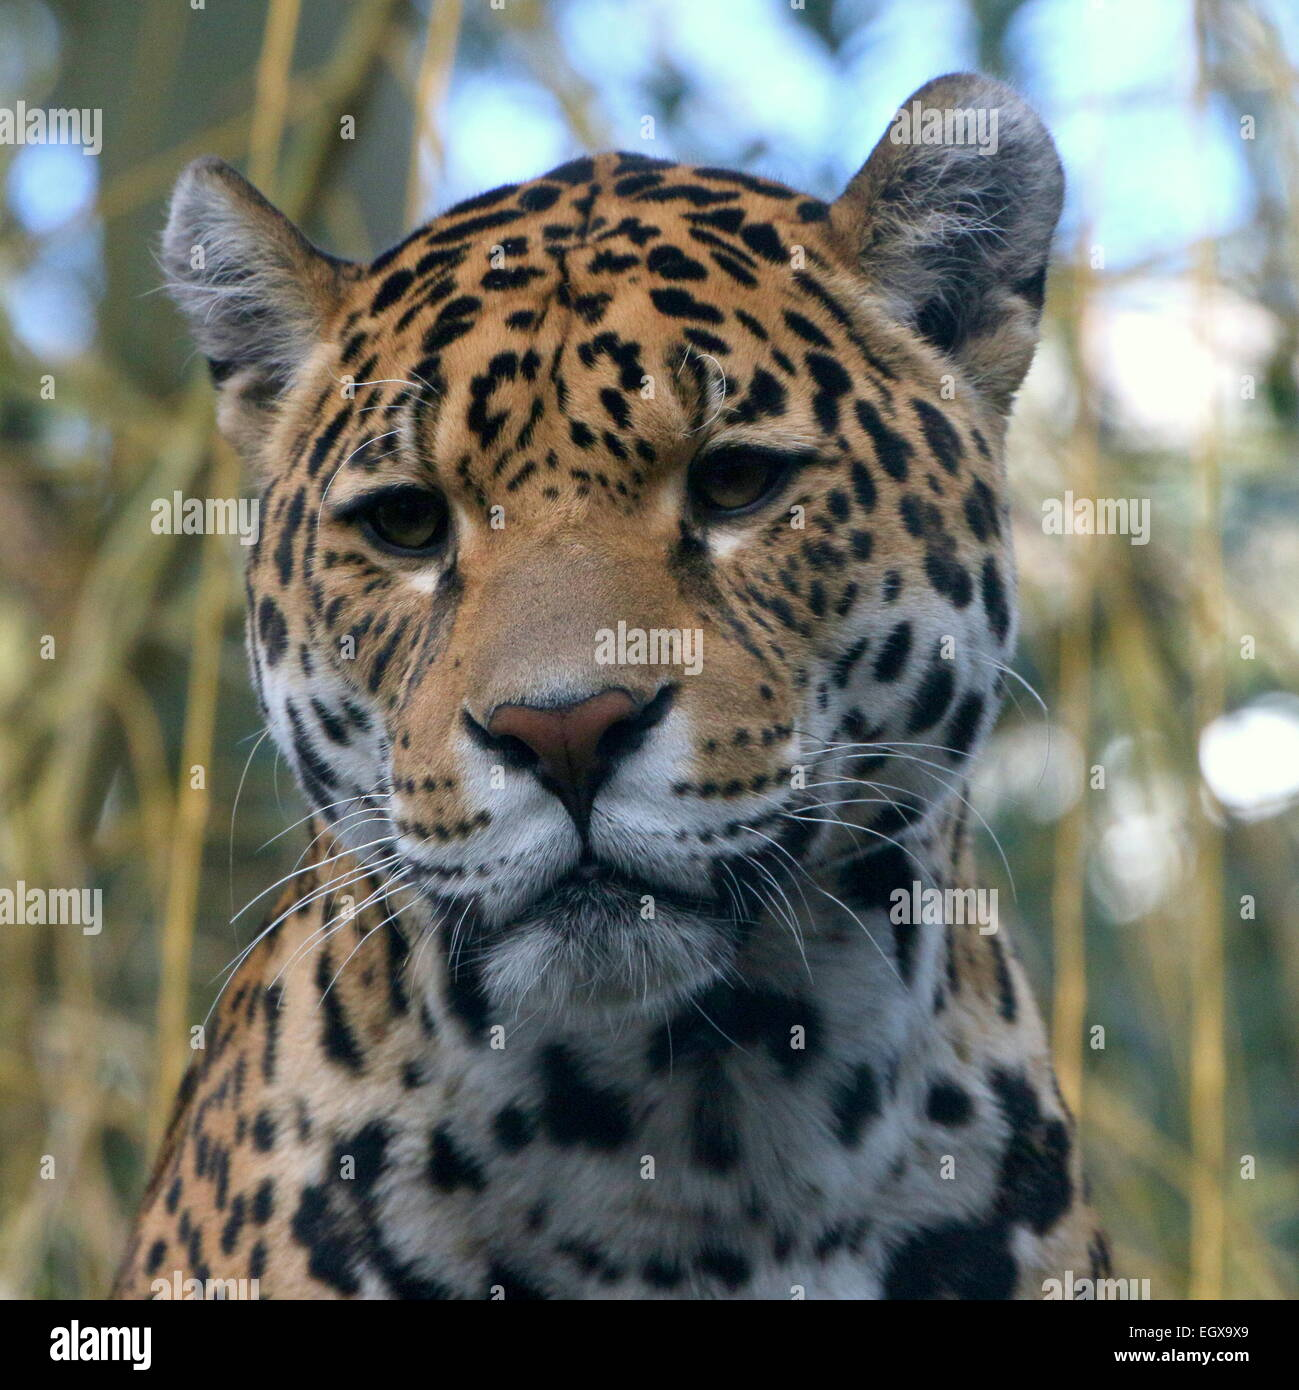 Female South American  Jaguar (Panthera onca) - Stock Image